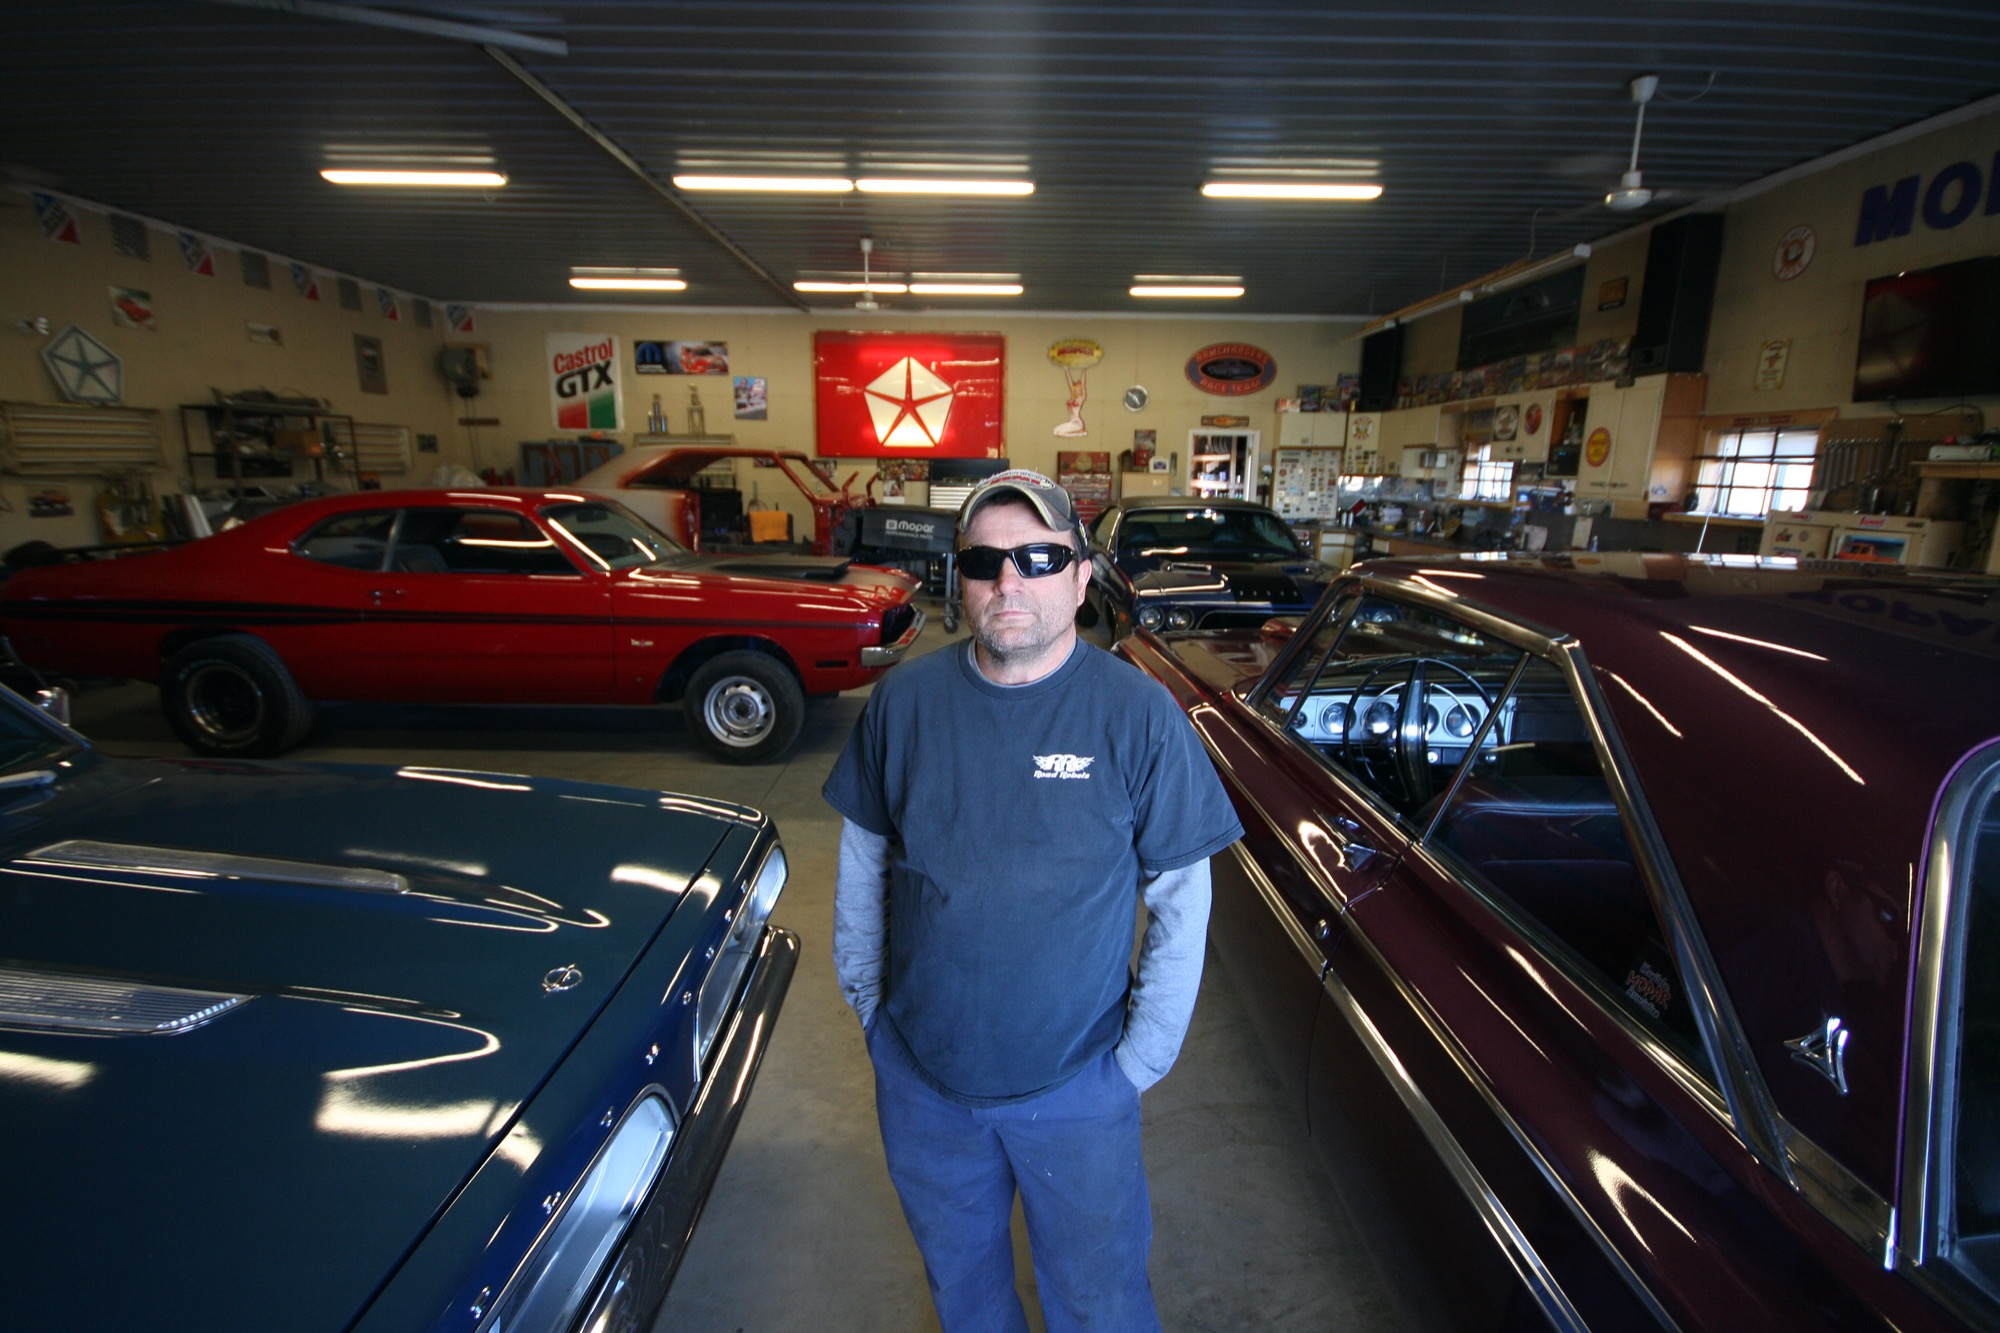 Mike Villers is seen in his expansive garage space near Shilo, where he babies his family's collection of classic cars from the '60s and '70s.